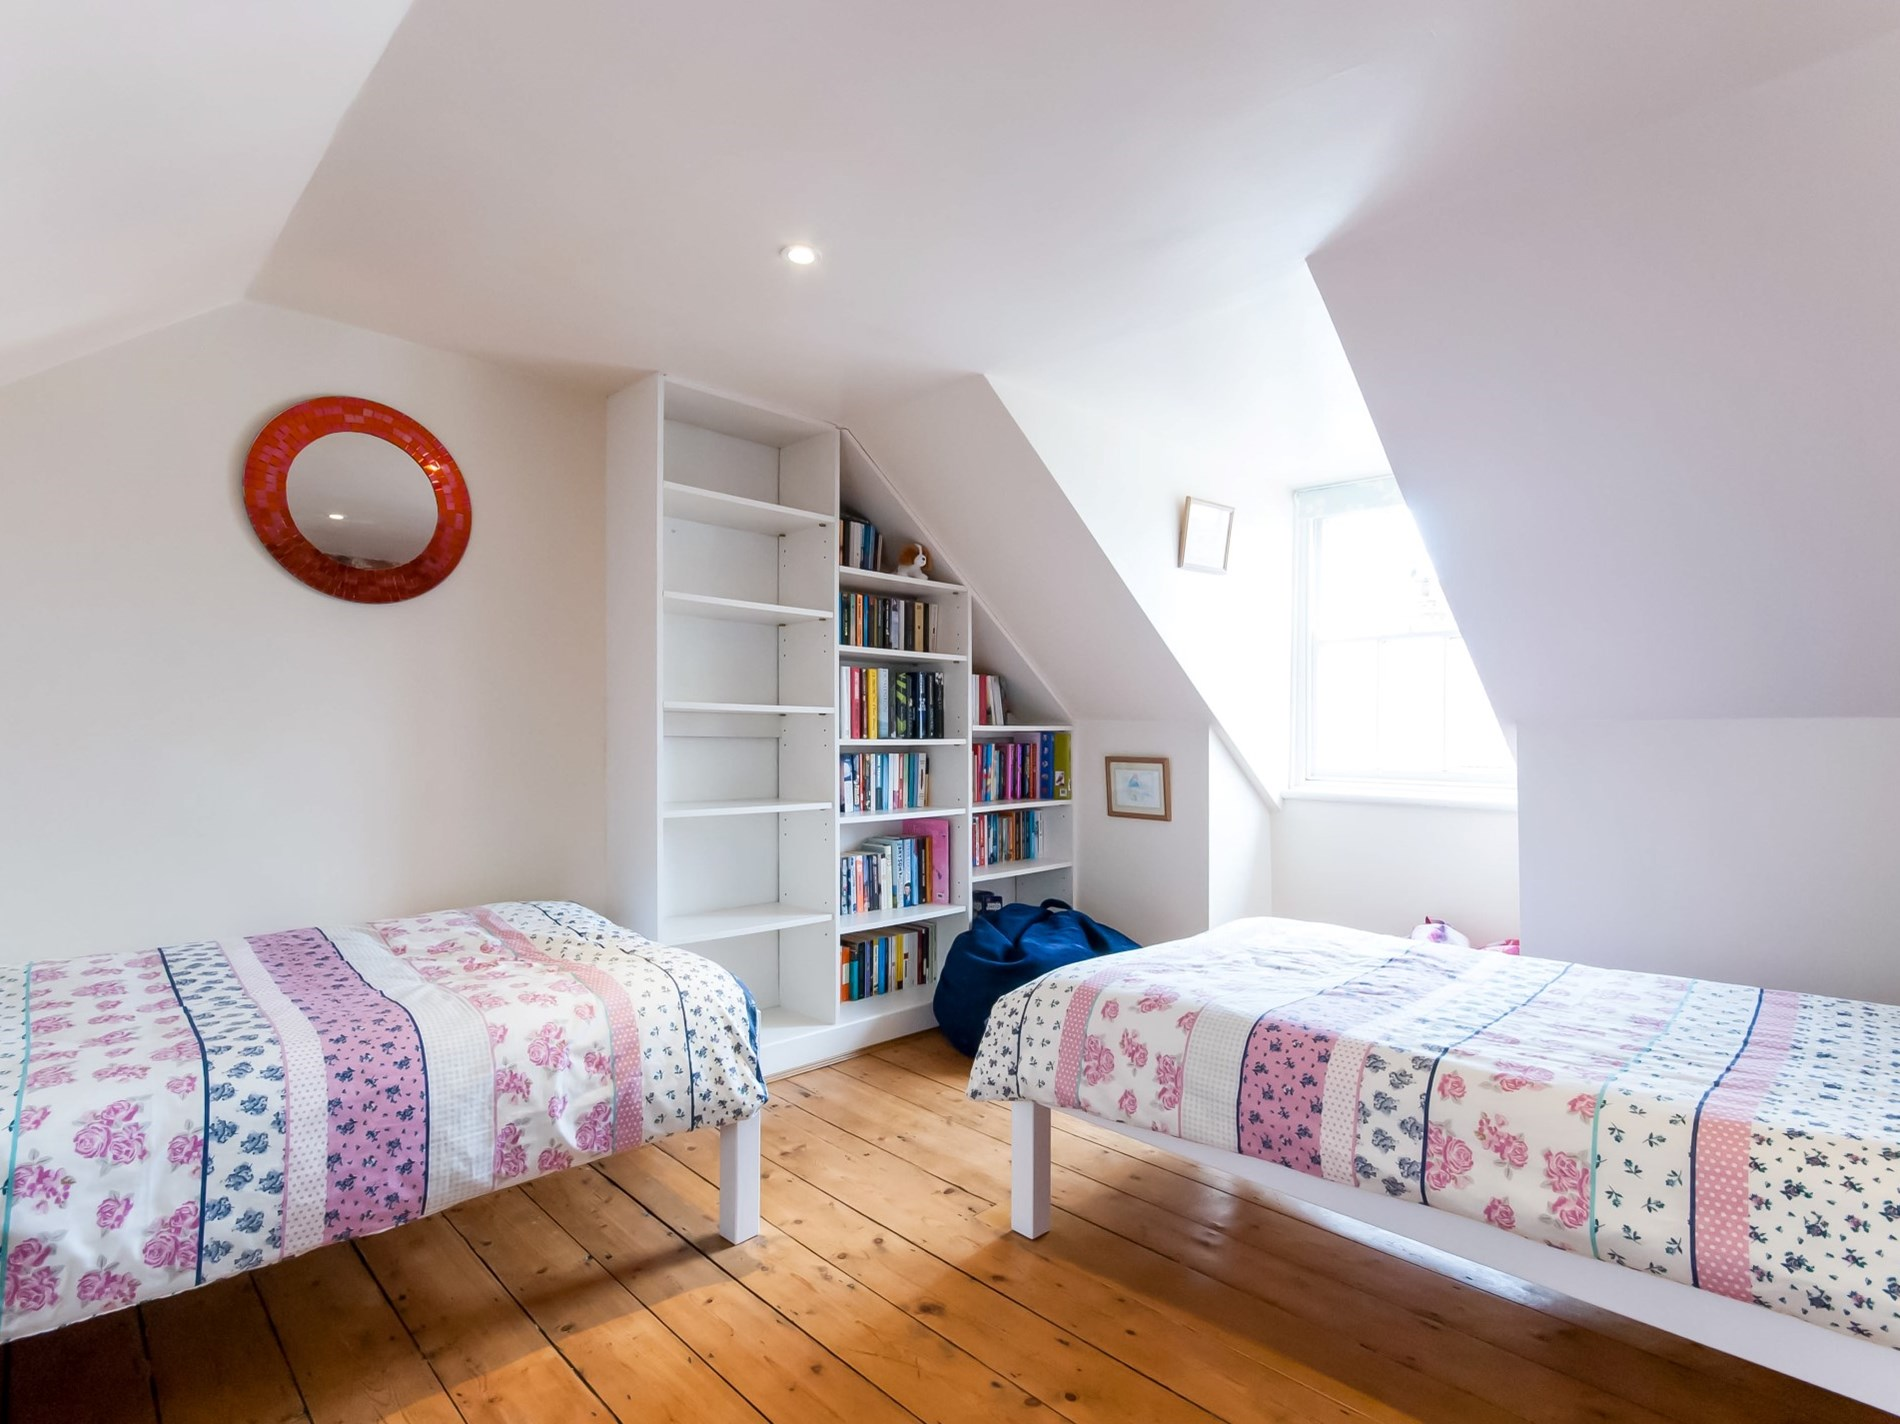 Twin bedroom located in the attic room